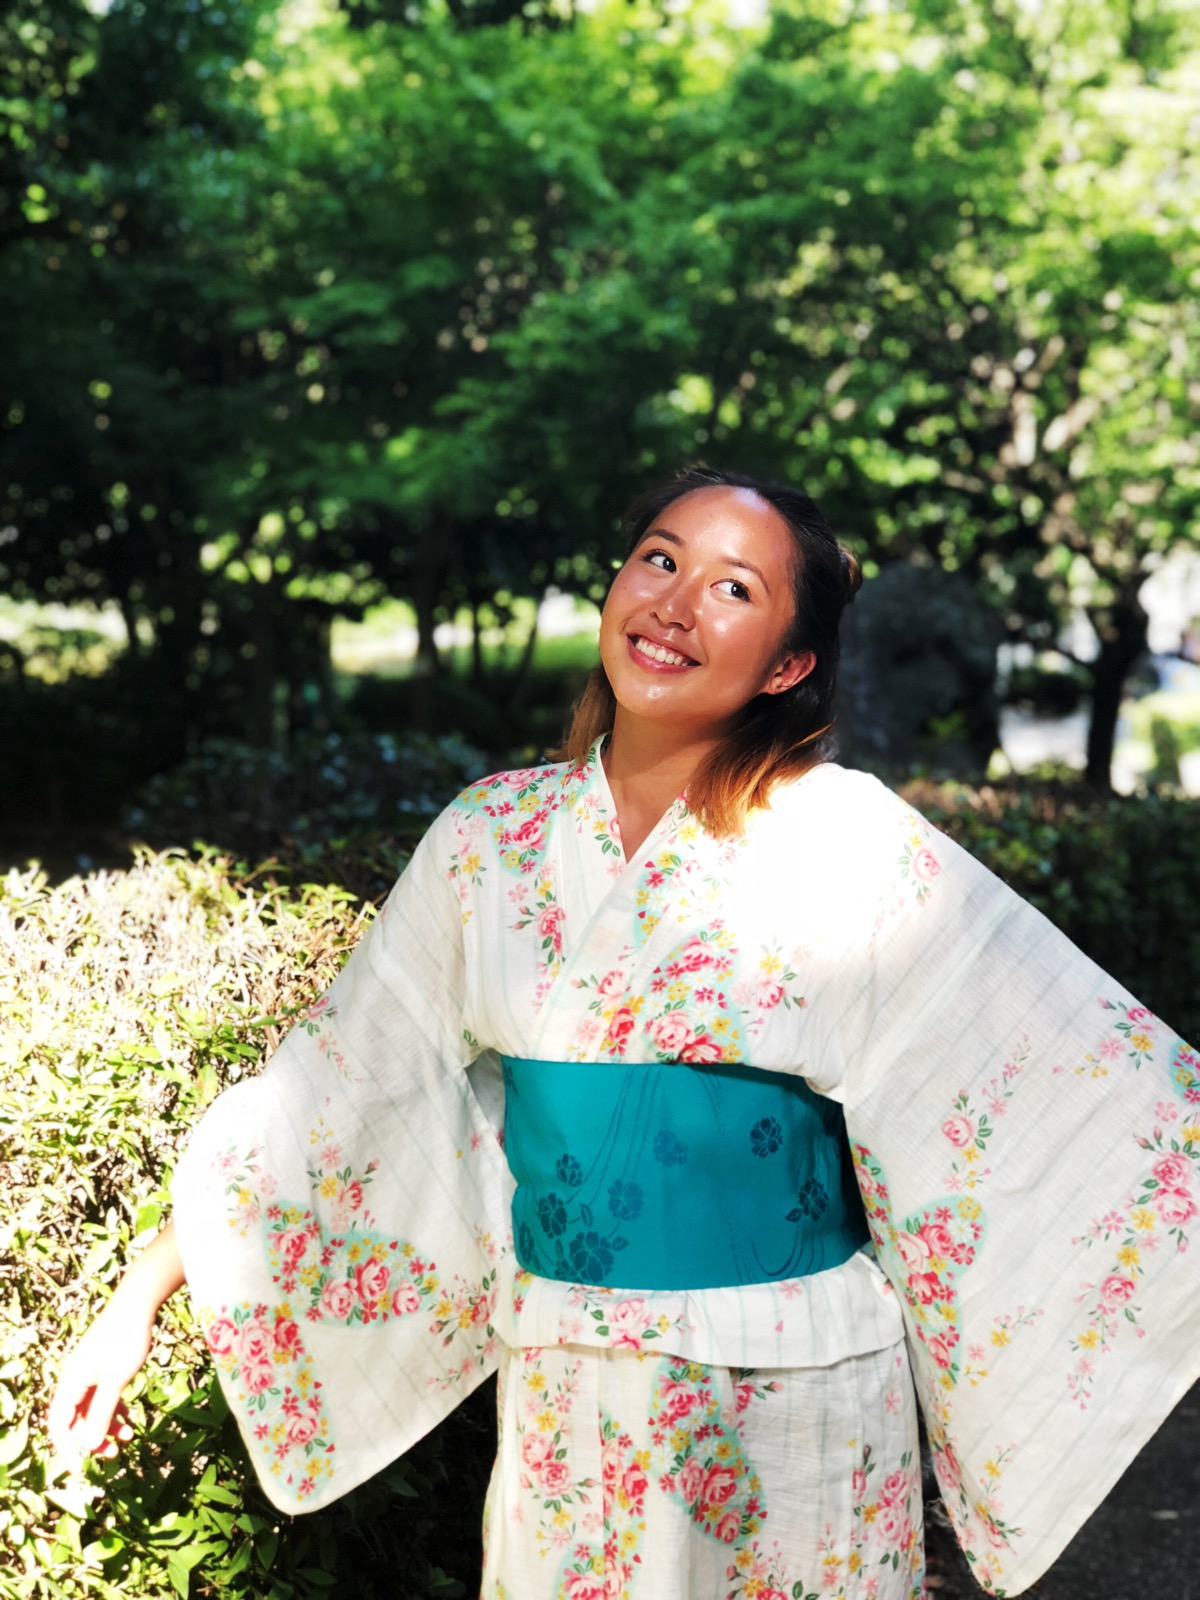 A story of a native English speaker in monolingual Waseda University